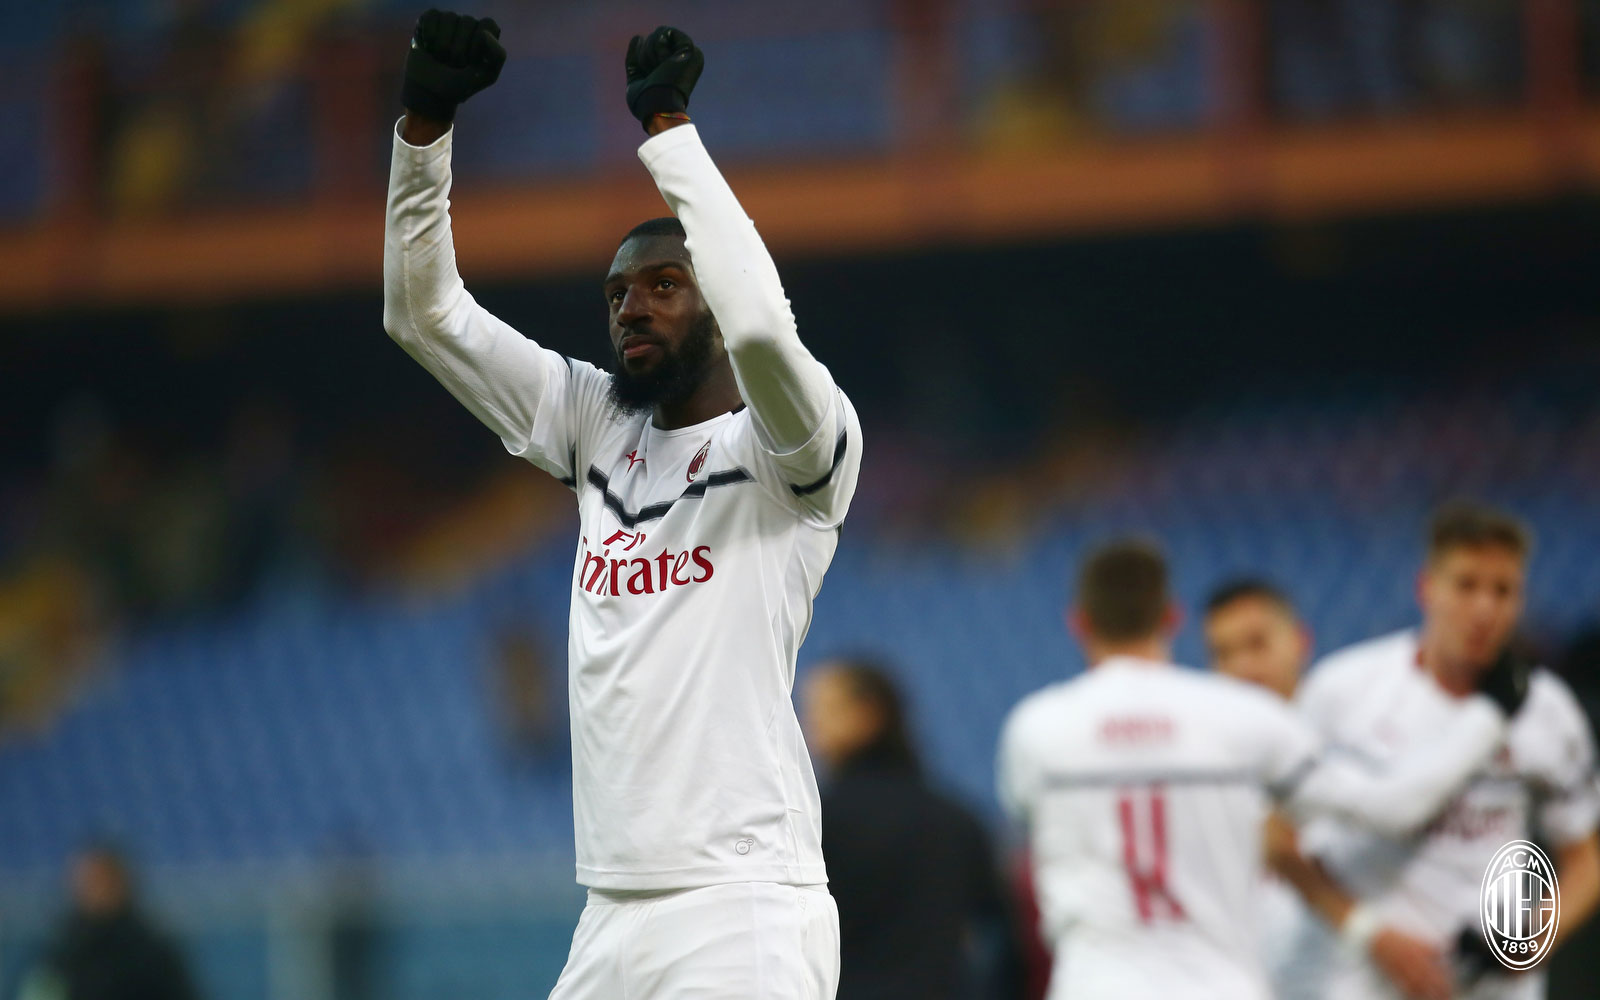 Tiémoué Bakayoko celebrating at the end of Genoa-Milan at Stadio Luigi Ferraris on January 21, 2019. (@acmilan.com)